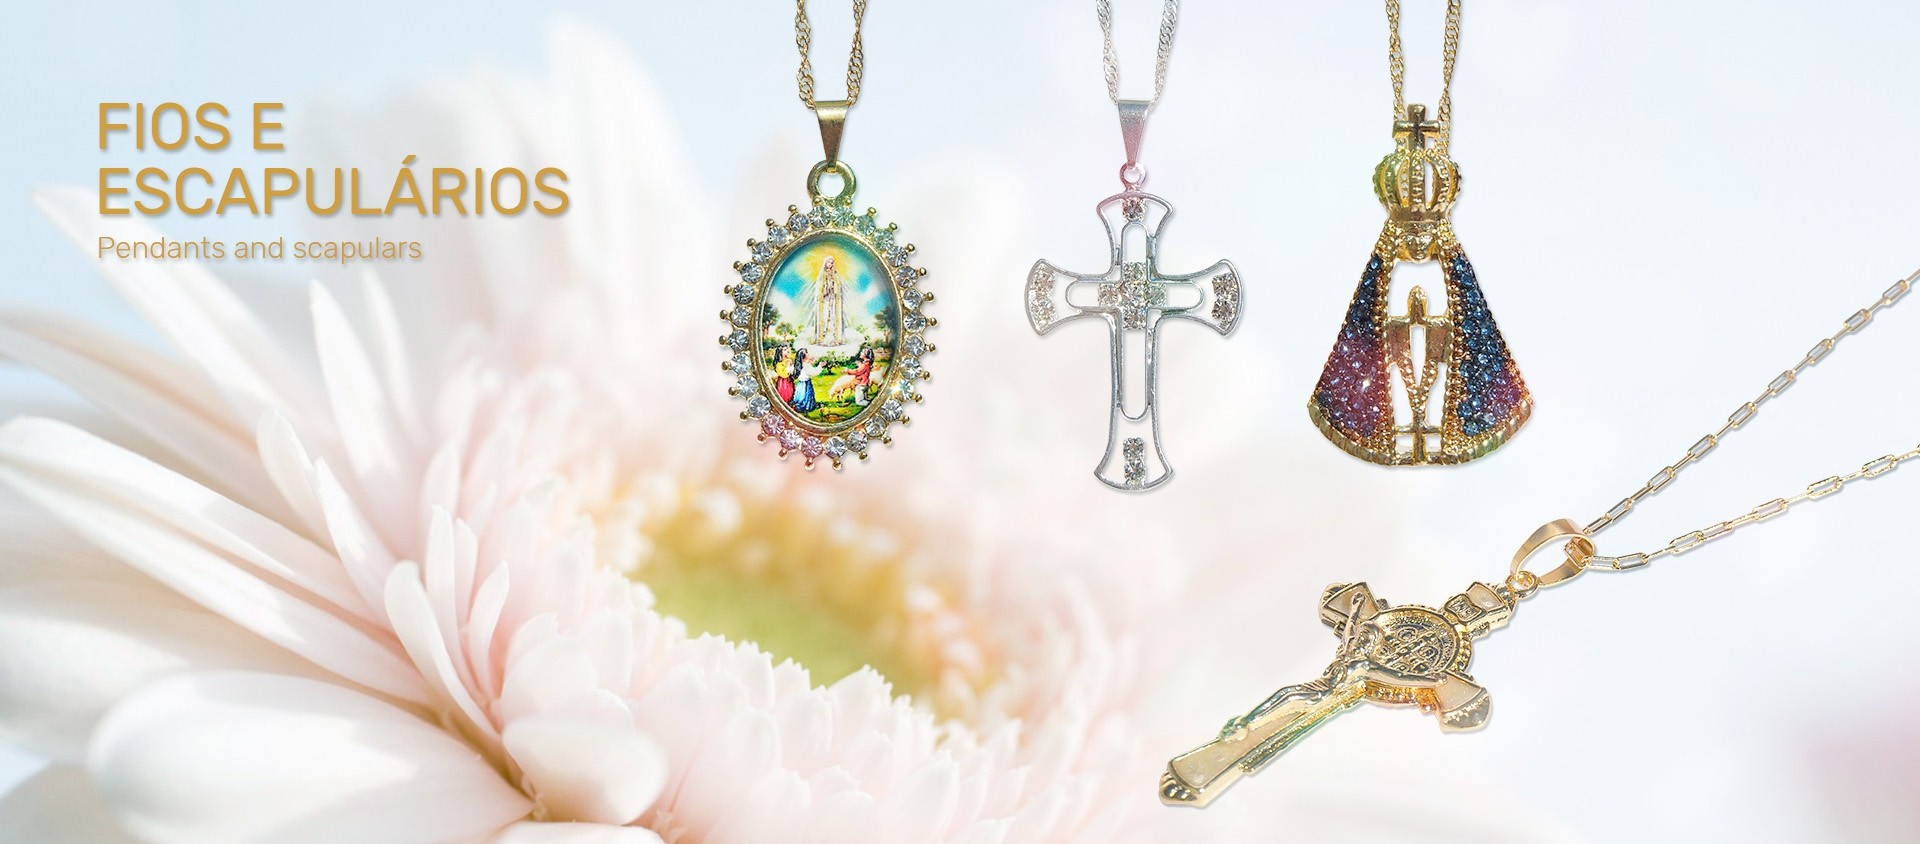 Pendants and scapulars